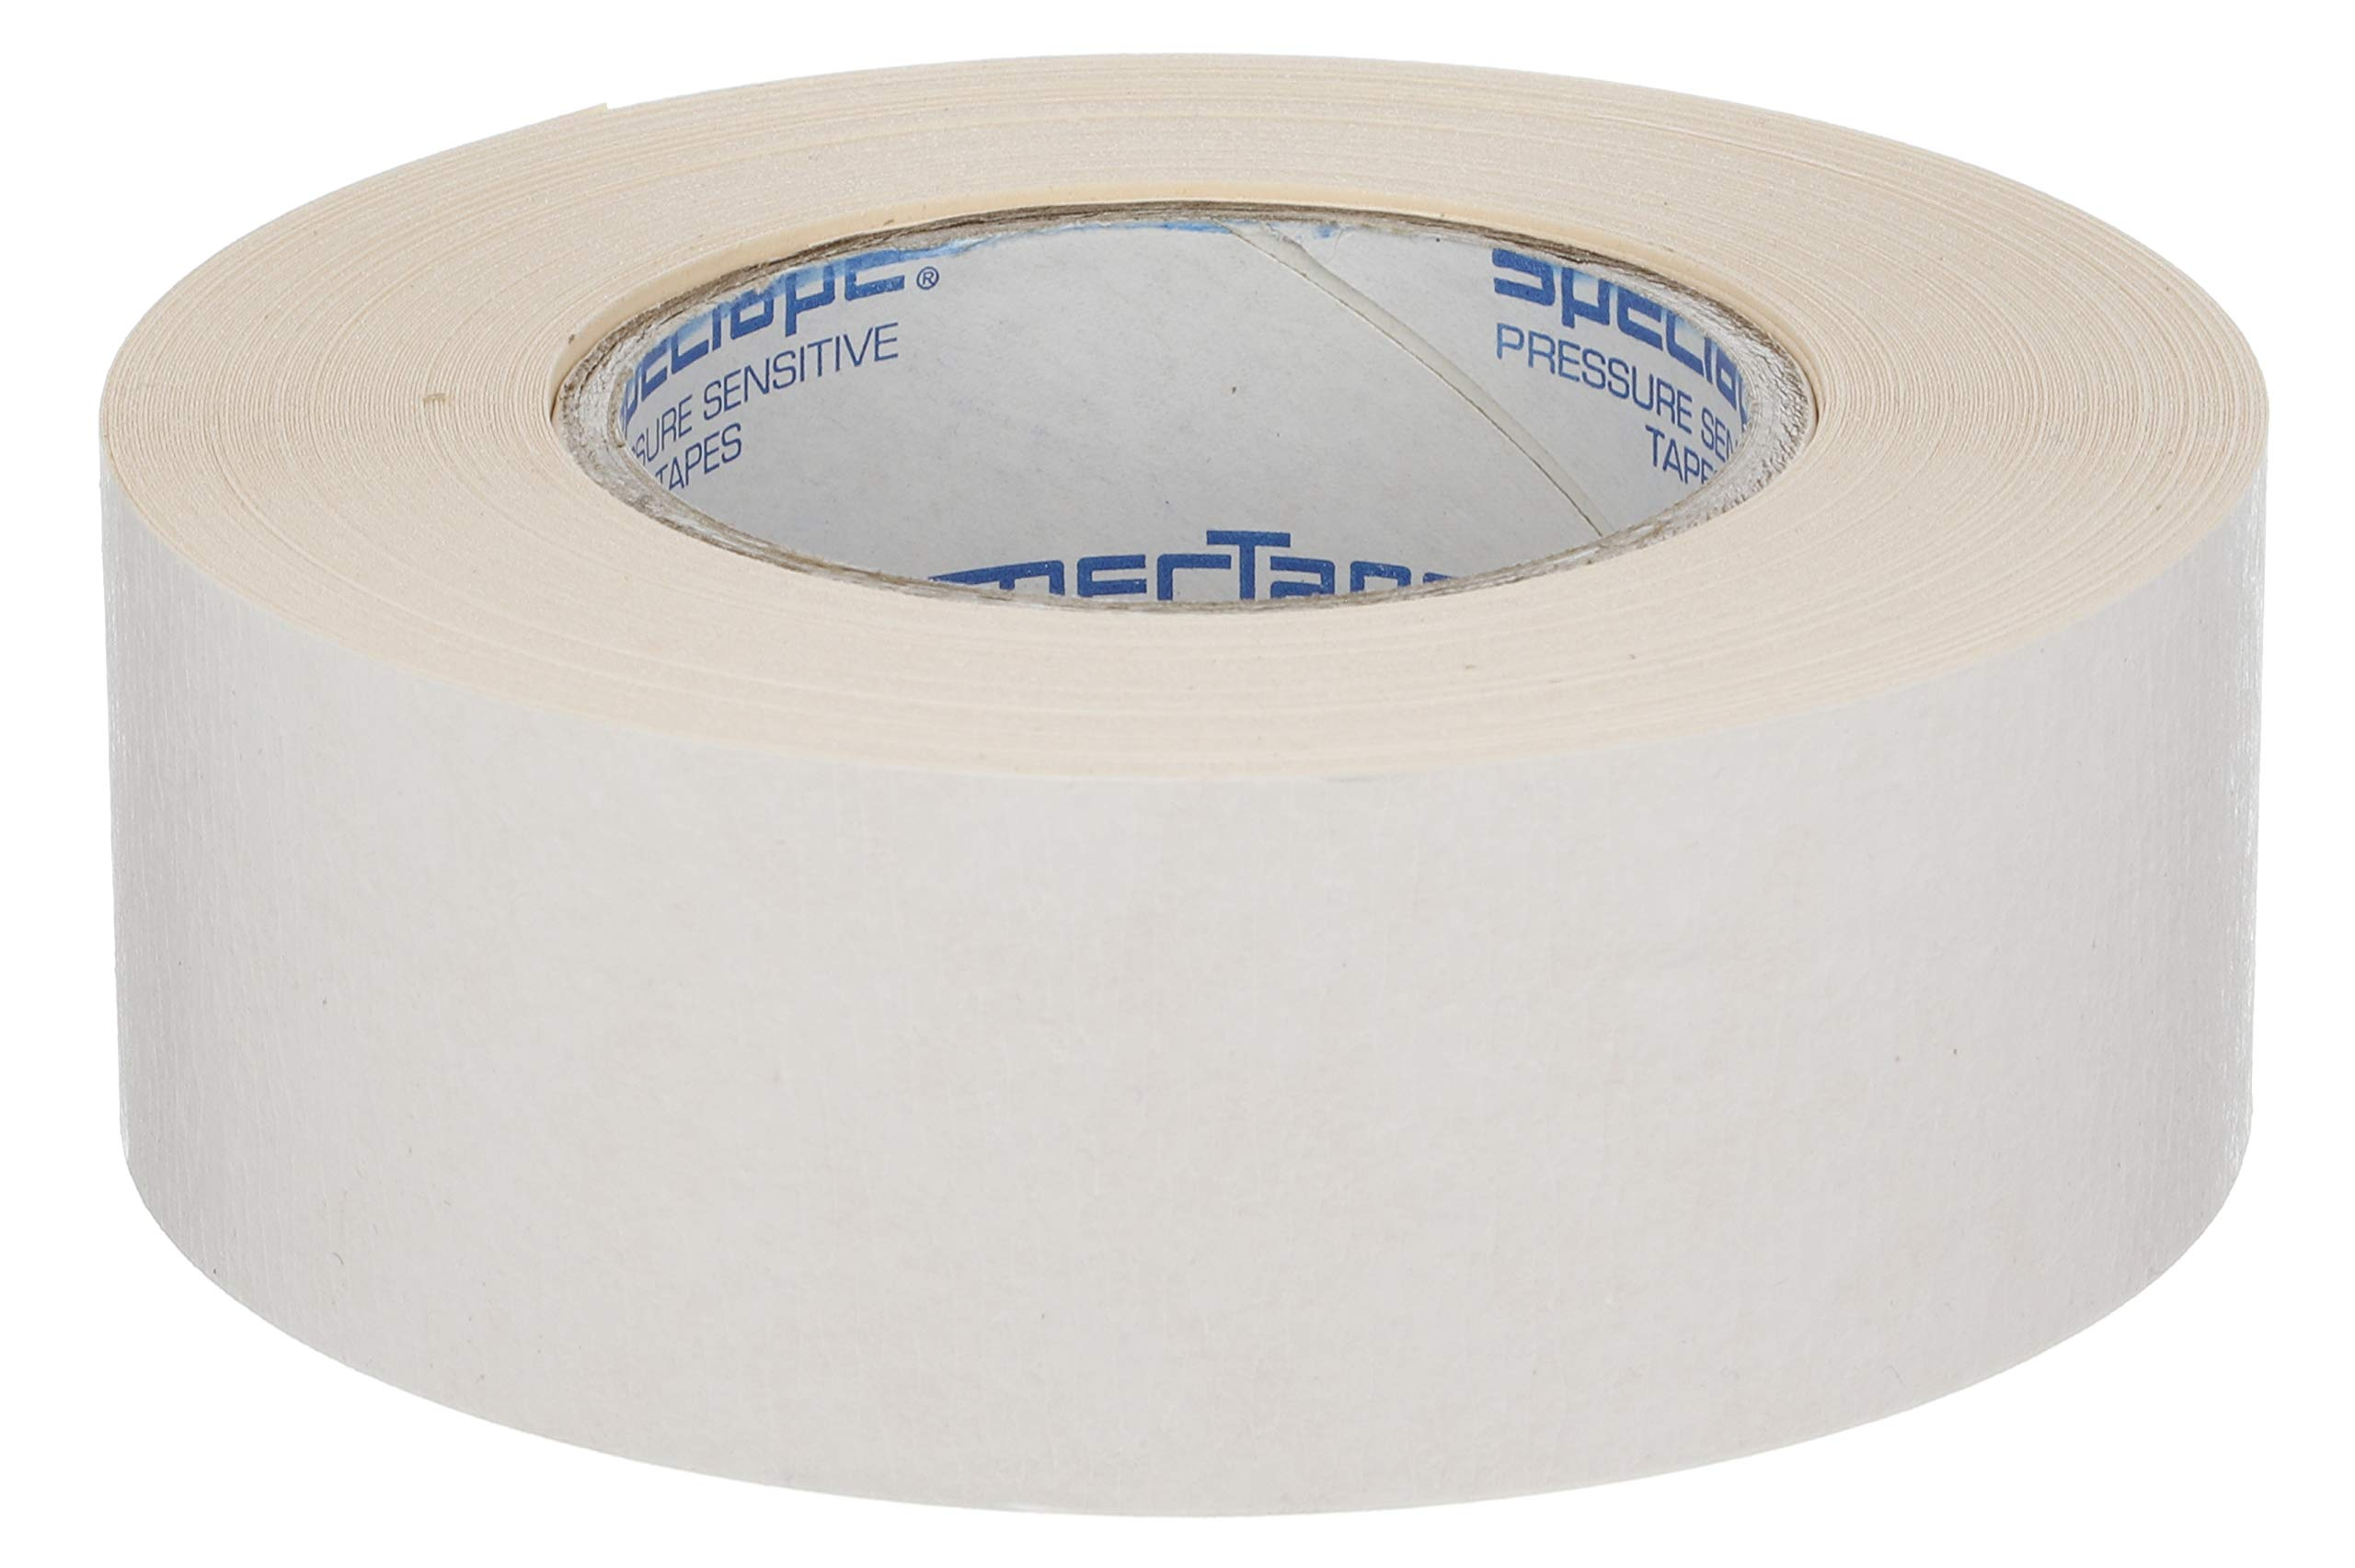 Spectape ST501 Double Sided Adhesive Tape, 36 yds Length x 2'' Width Paper